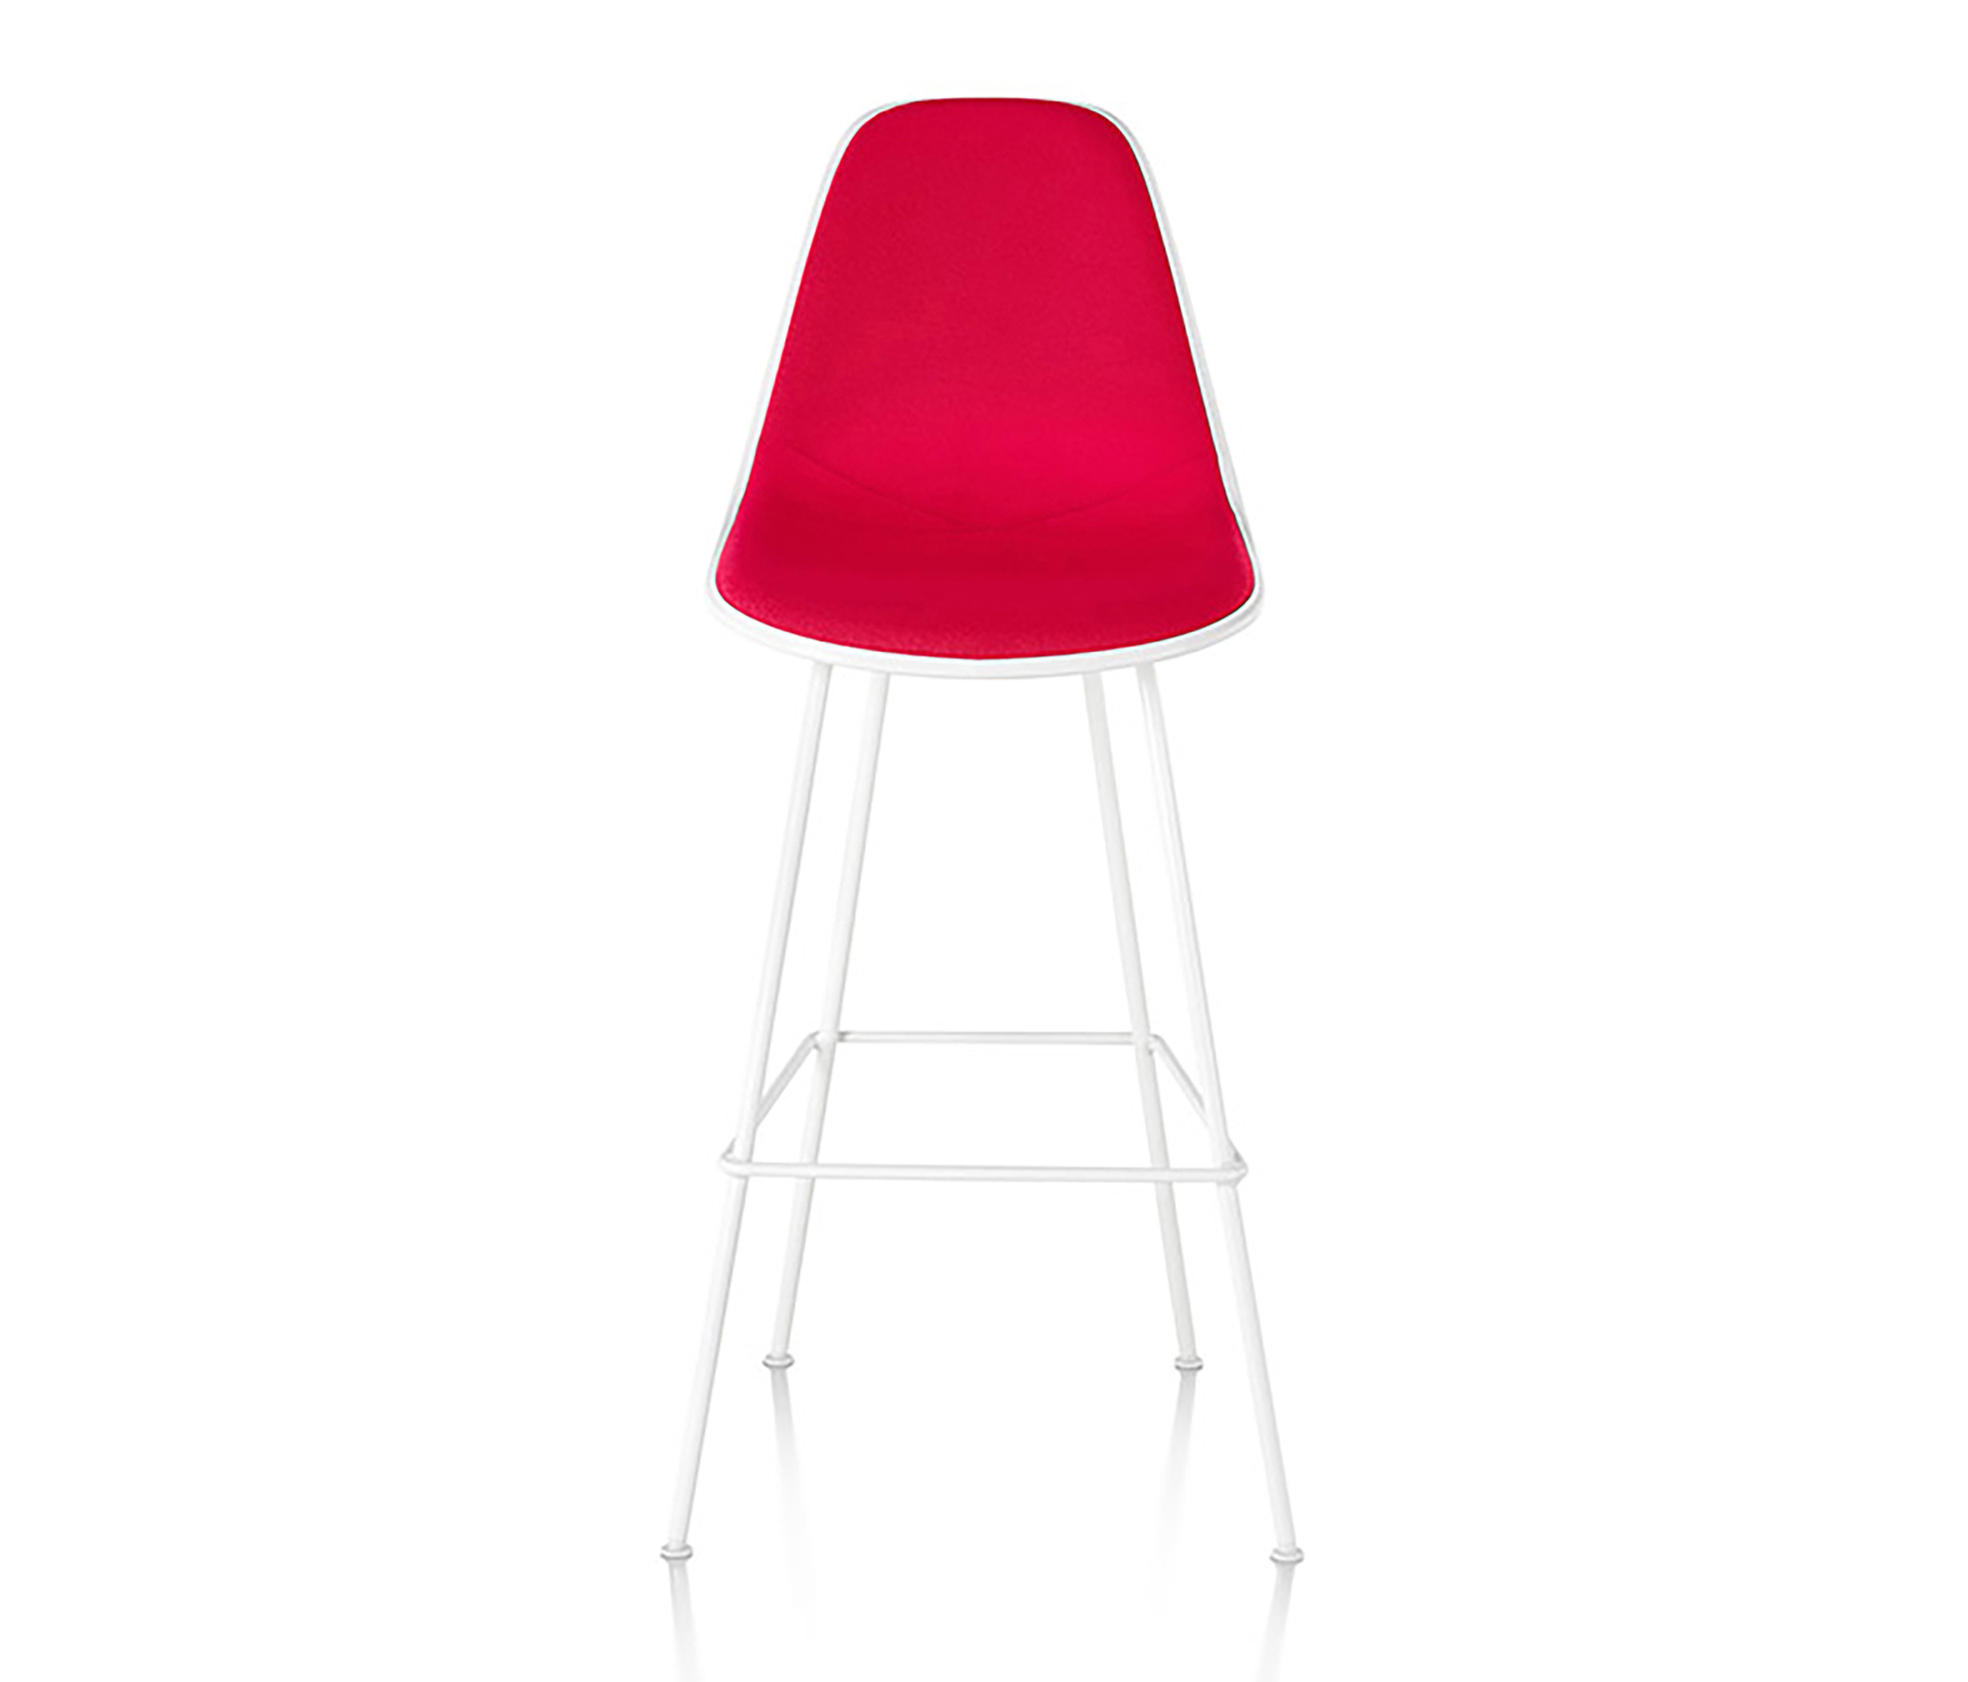 Eames Molded Plastic Stool Bar Stools From Herman Miller